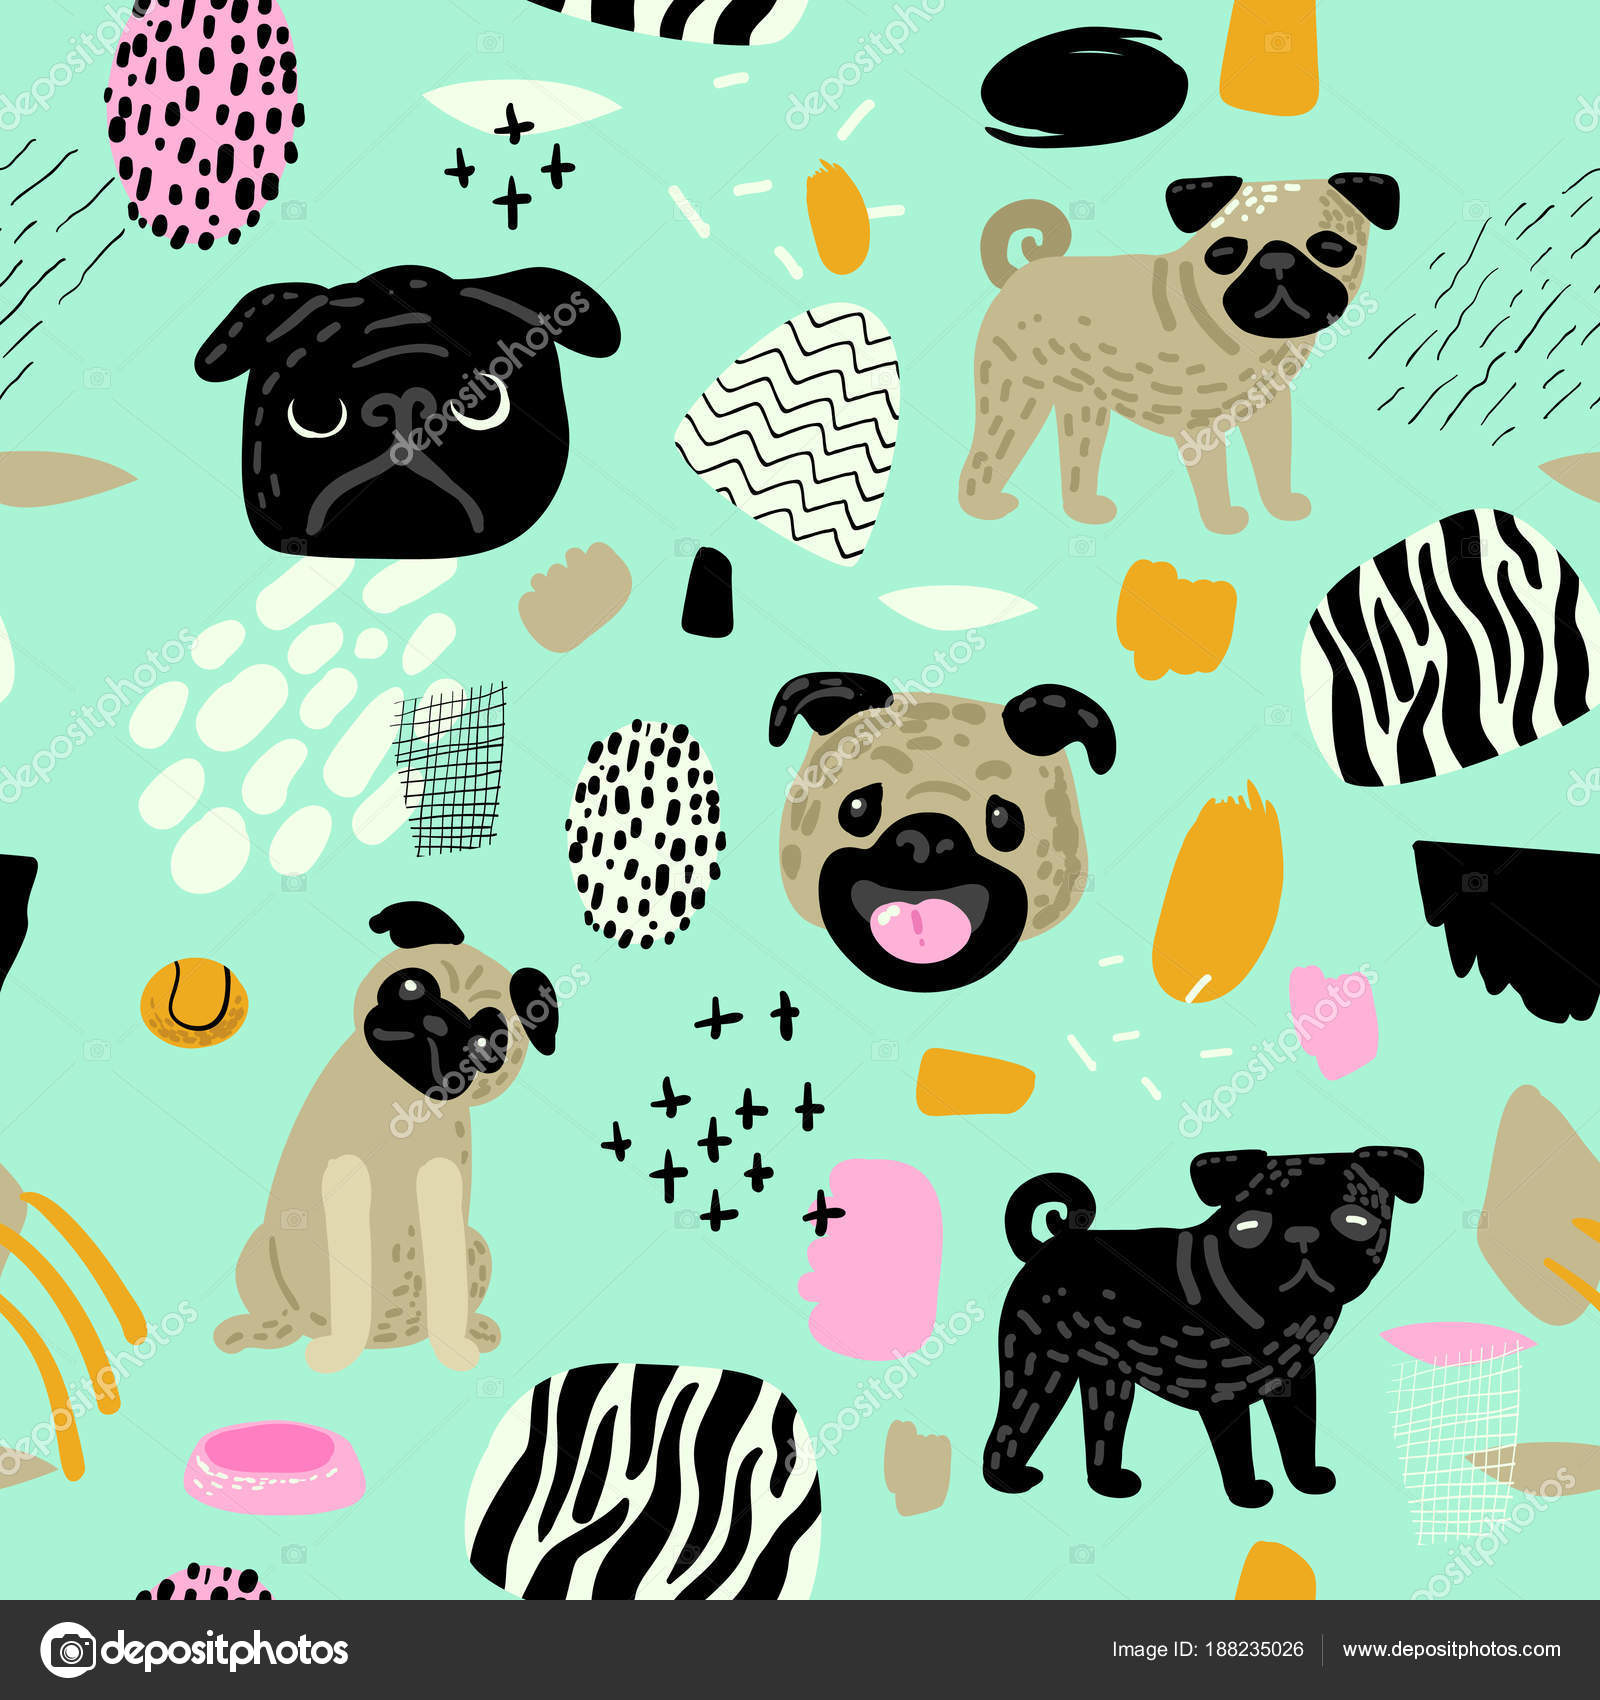 Wallpapers Baby Pug Wallpaper Cute Dogs Seamless Pattern Childish Background With Pug Puppies And Abstract Elements Baby Freehand Doodle For Fabric Textile Wallpaper Wrapping Vector Illustration Stock Vector C Vectorlab 188235026